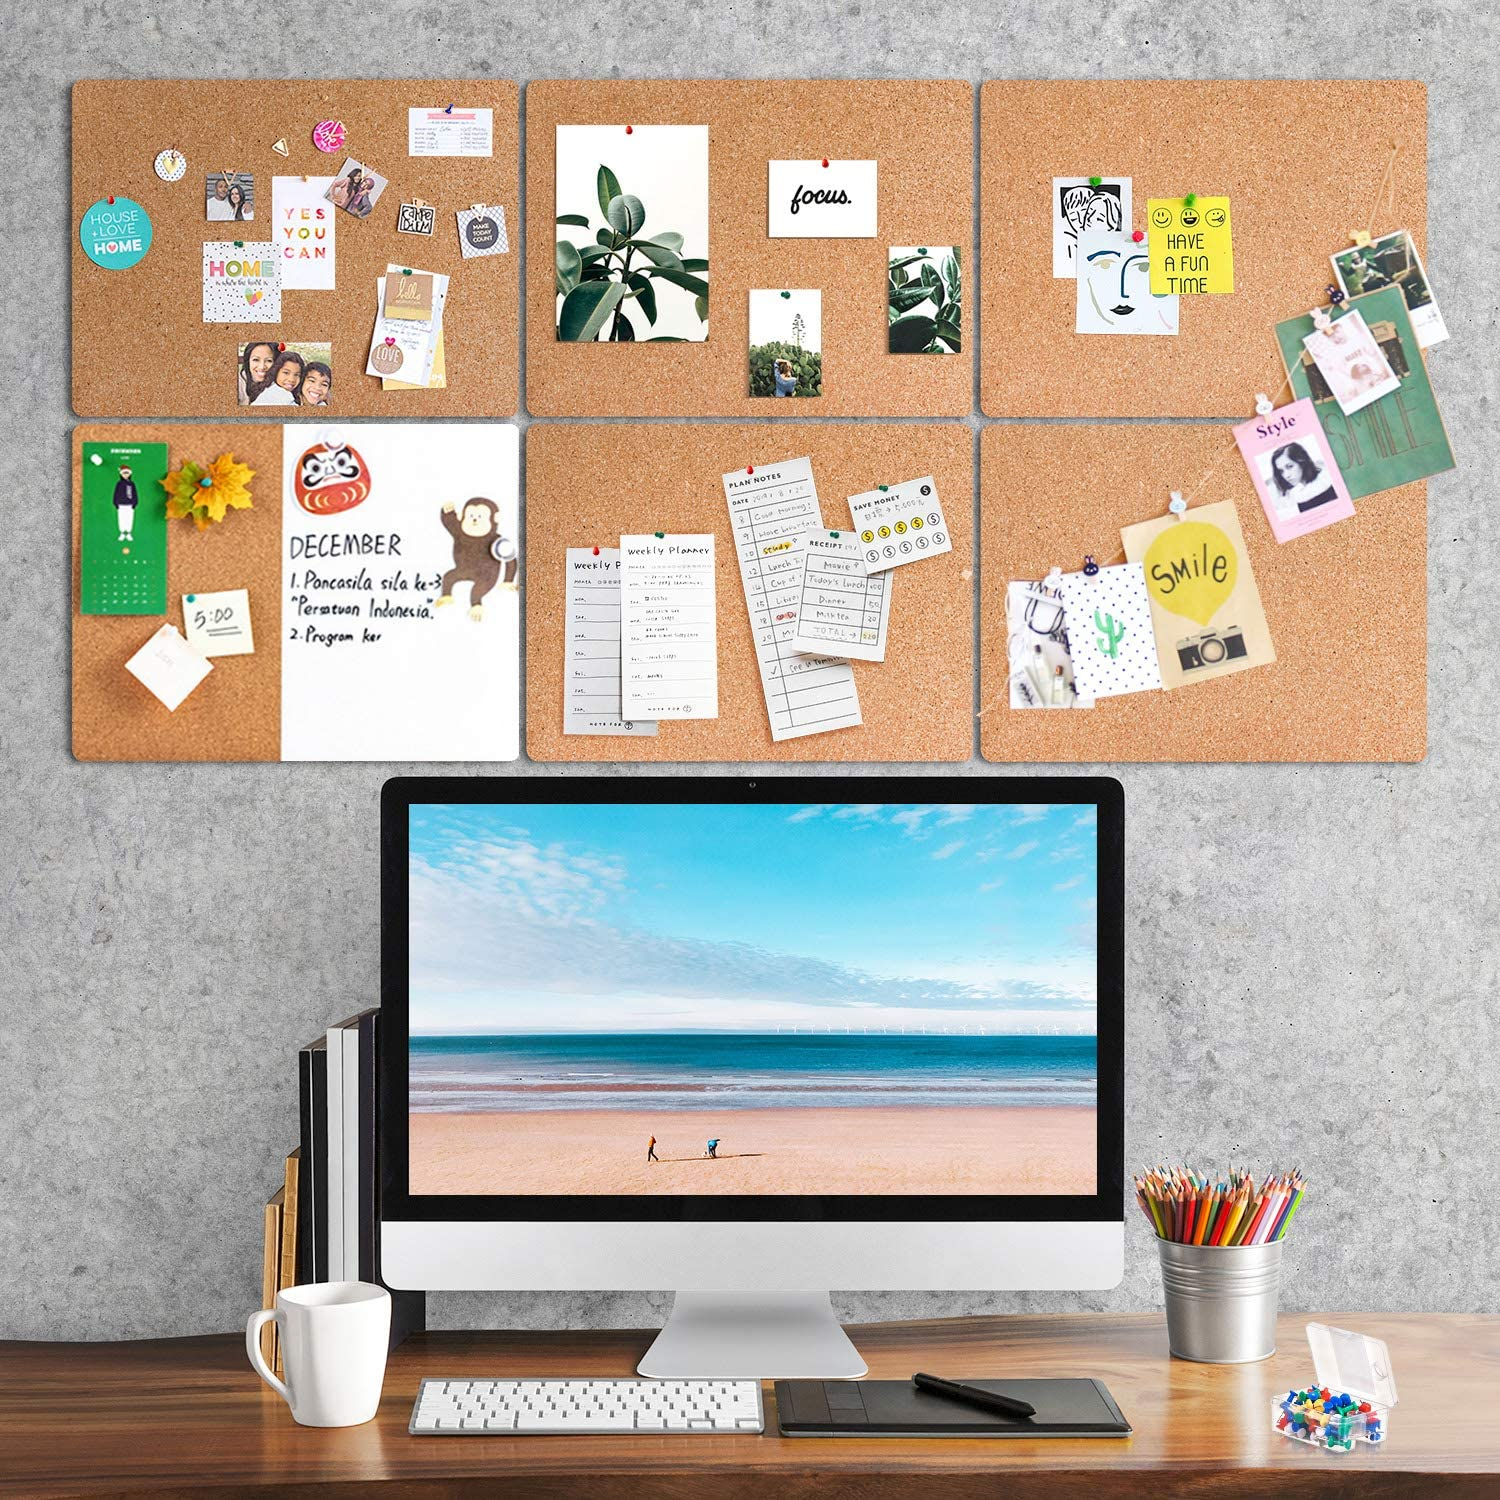 Home Decoration Message Memo Pin Boards DIY Tea Cup Whaline 8 Pack Square Cork Board Cork Tile Boards Small Bulletin Boards with 50 Pins Natural Notice Tiles for Office